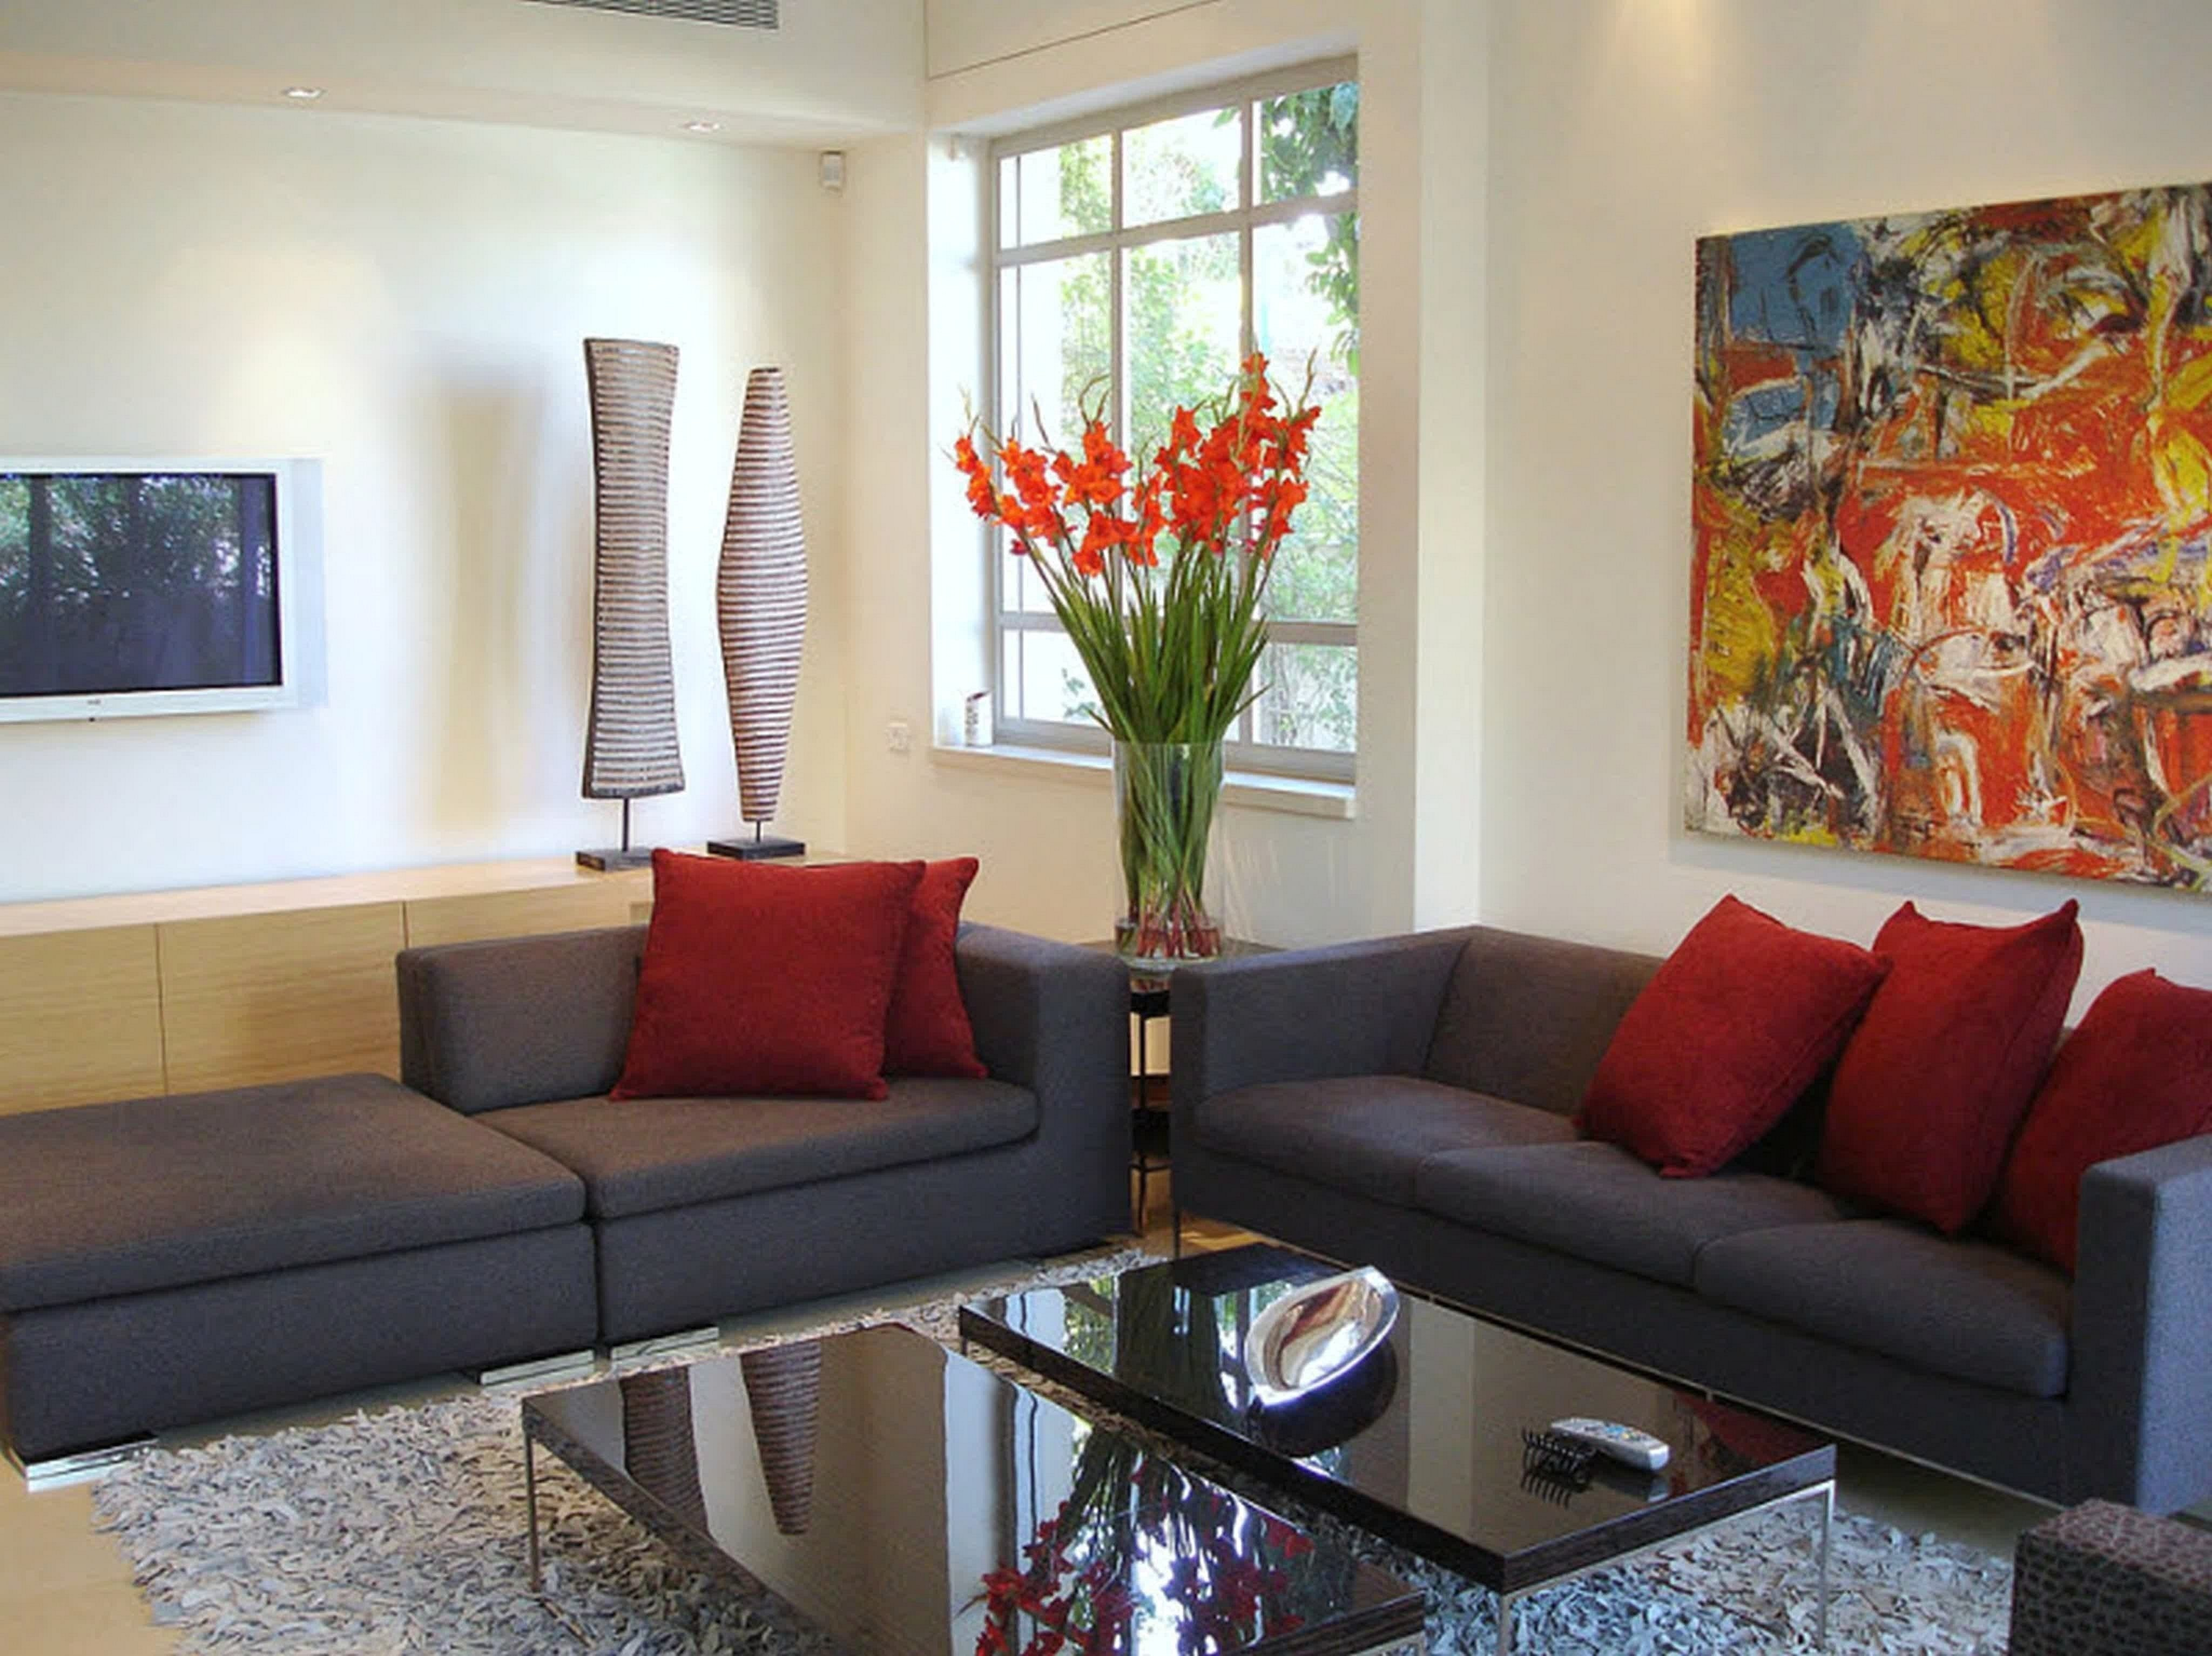 10 Lovely Living Room Decorating Ideas On A Budget creative living room decorating ideas for apartments cheap home 1 2020